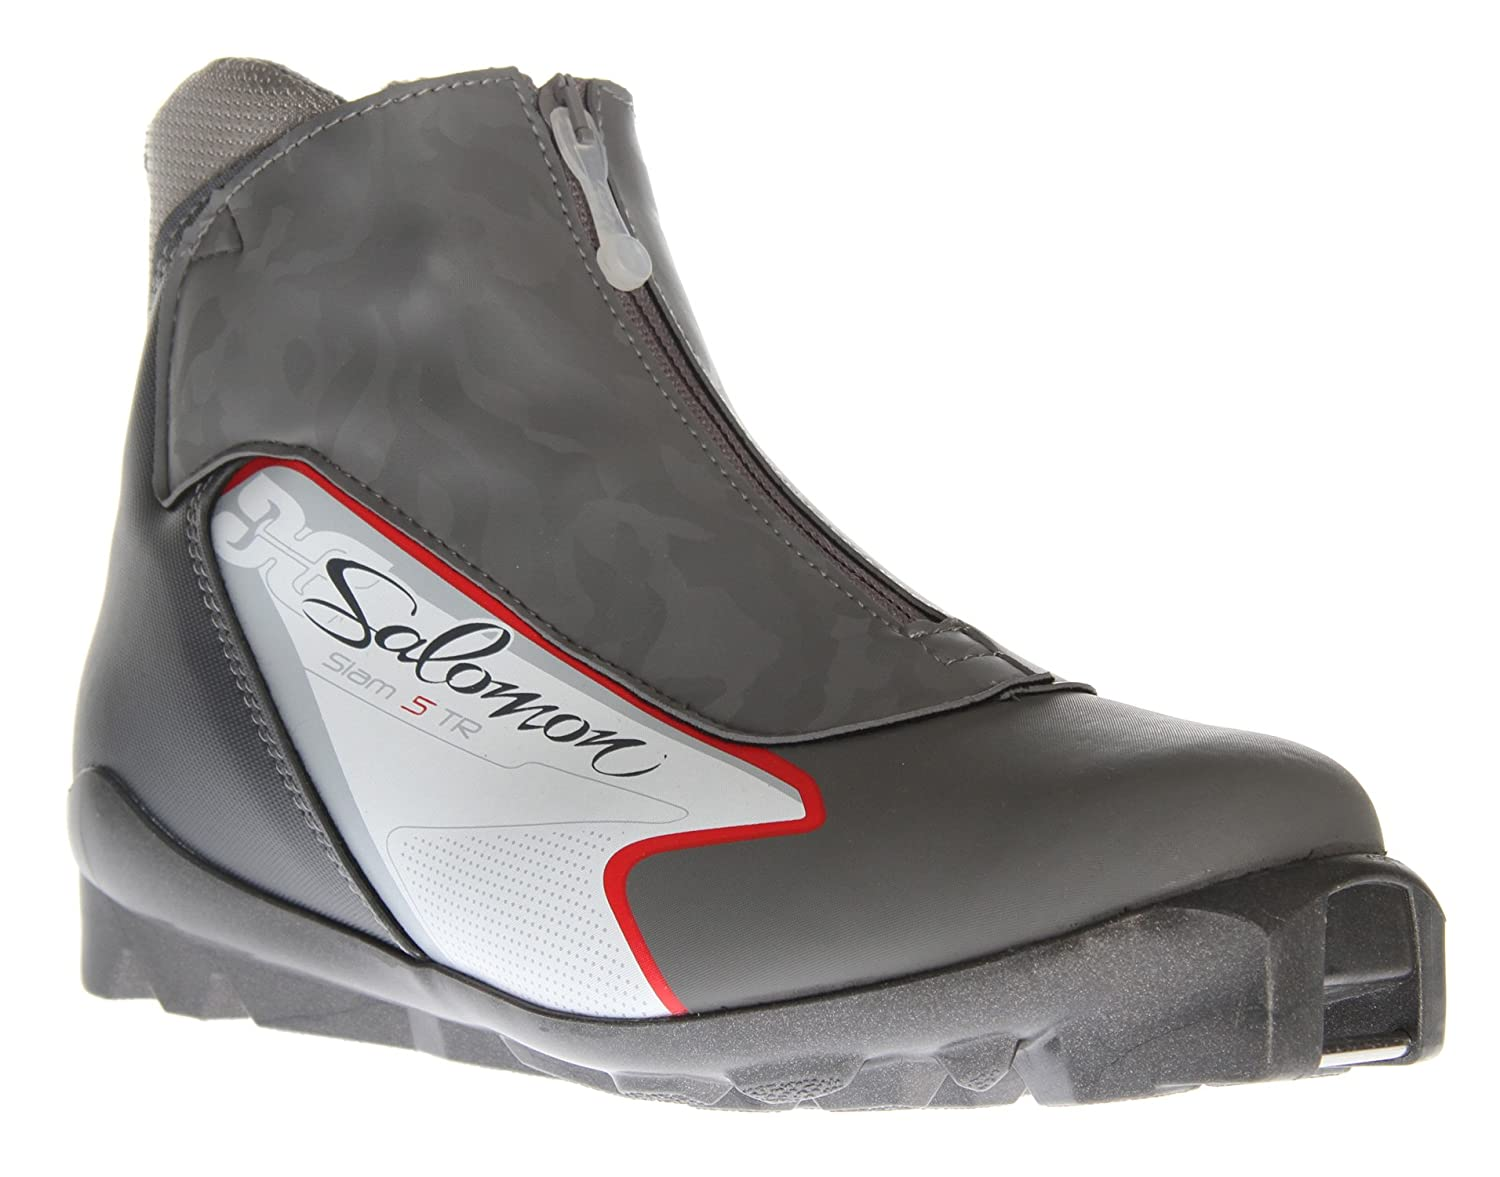 Ski 5tr Fonds Salomon Chaussures Rxboewqcd Escape De nN8wPvm0Oy